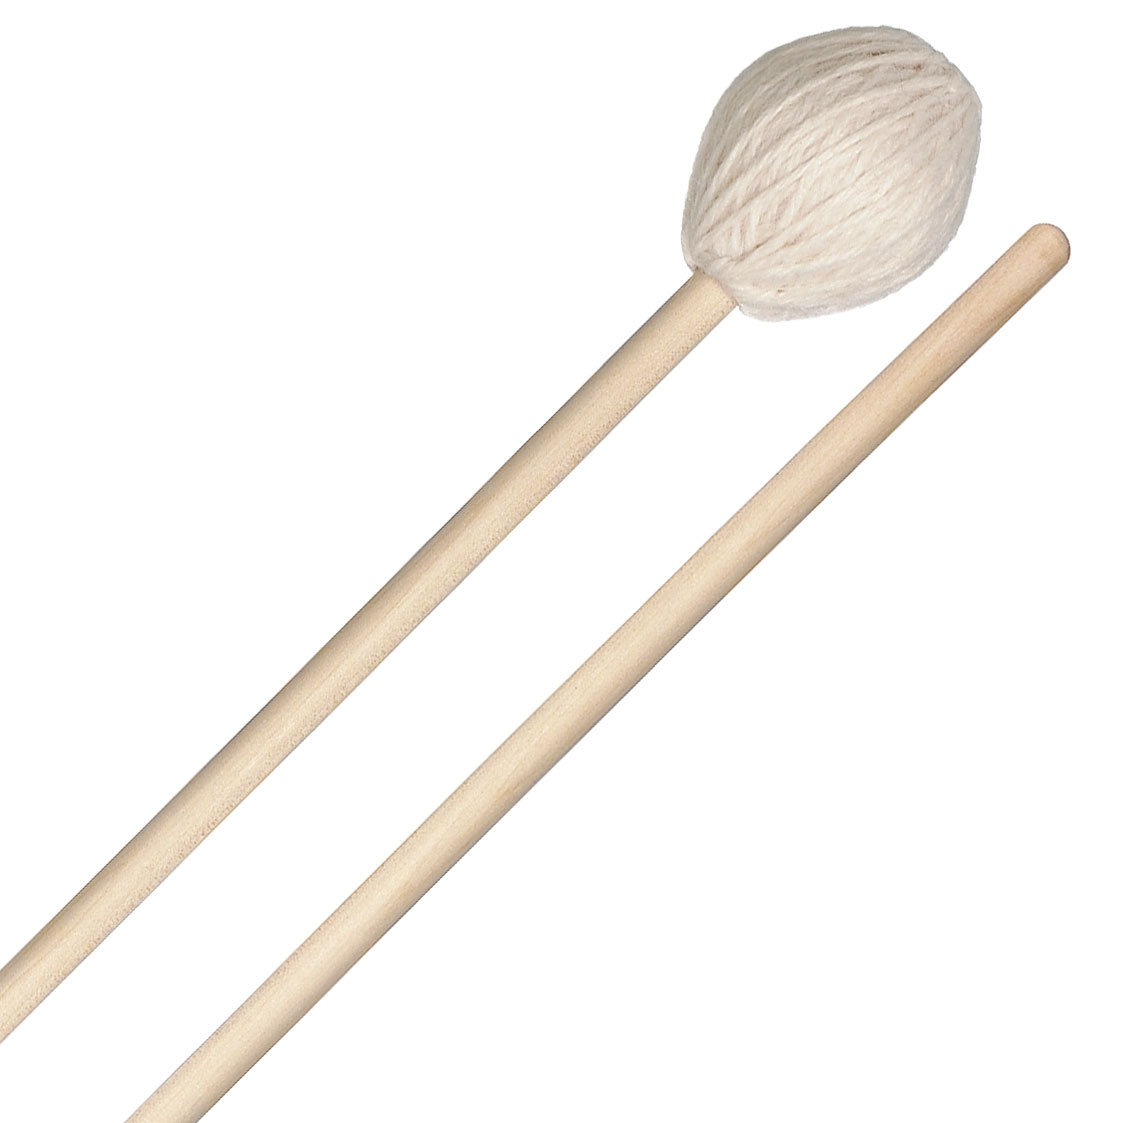 Vic Firth Gifford Howarth Signature Medium Yarn Marimba Mallets